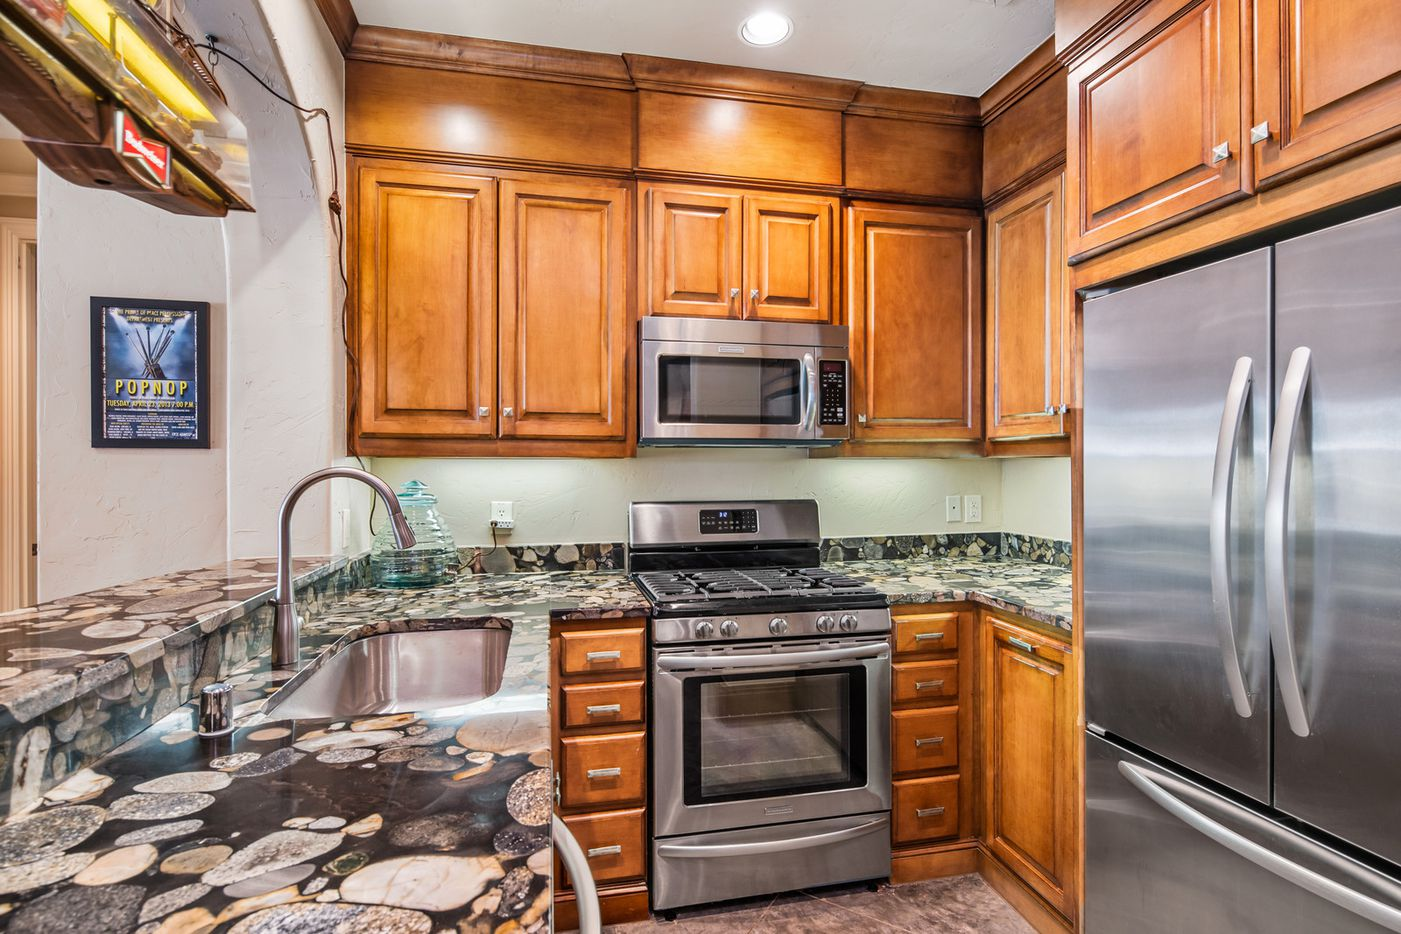 The second kitchen at 3 Stonebriar Way in Frisco, TX.